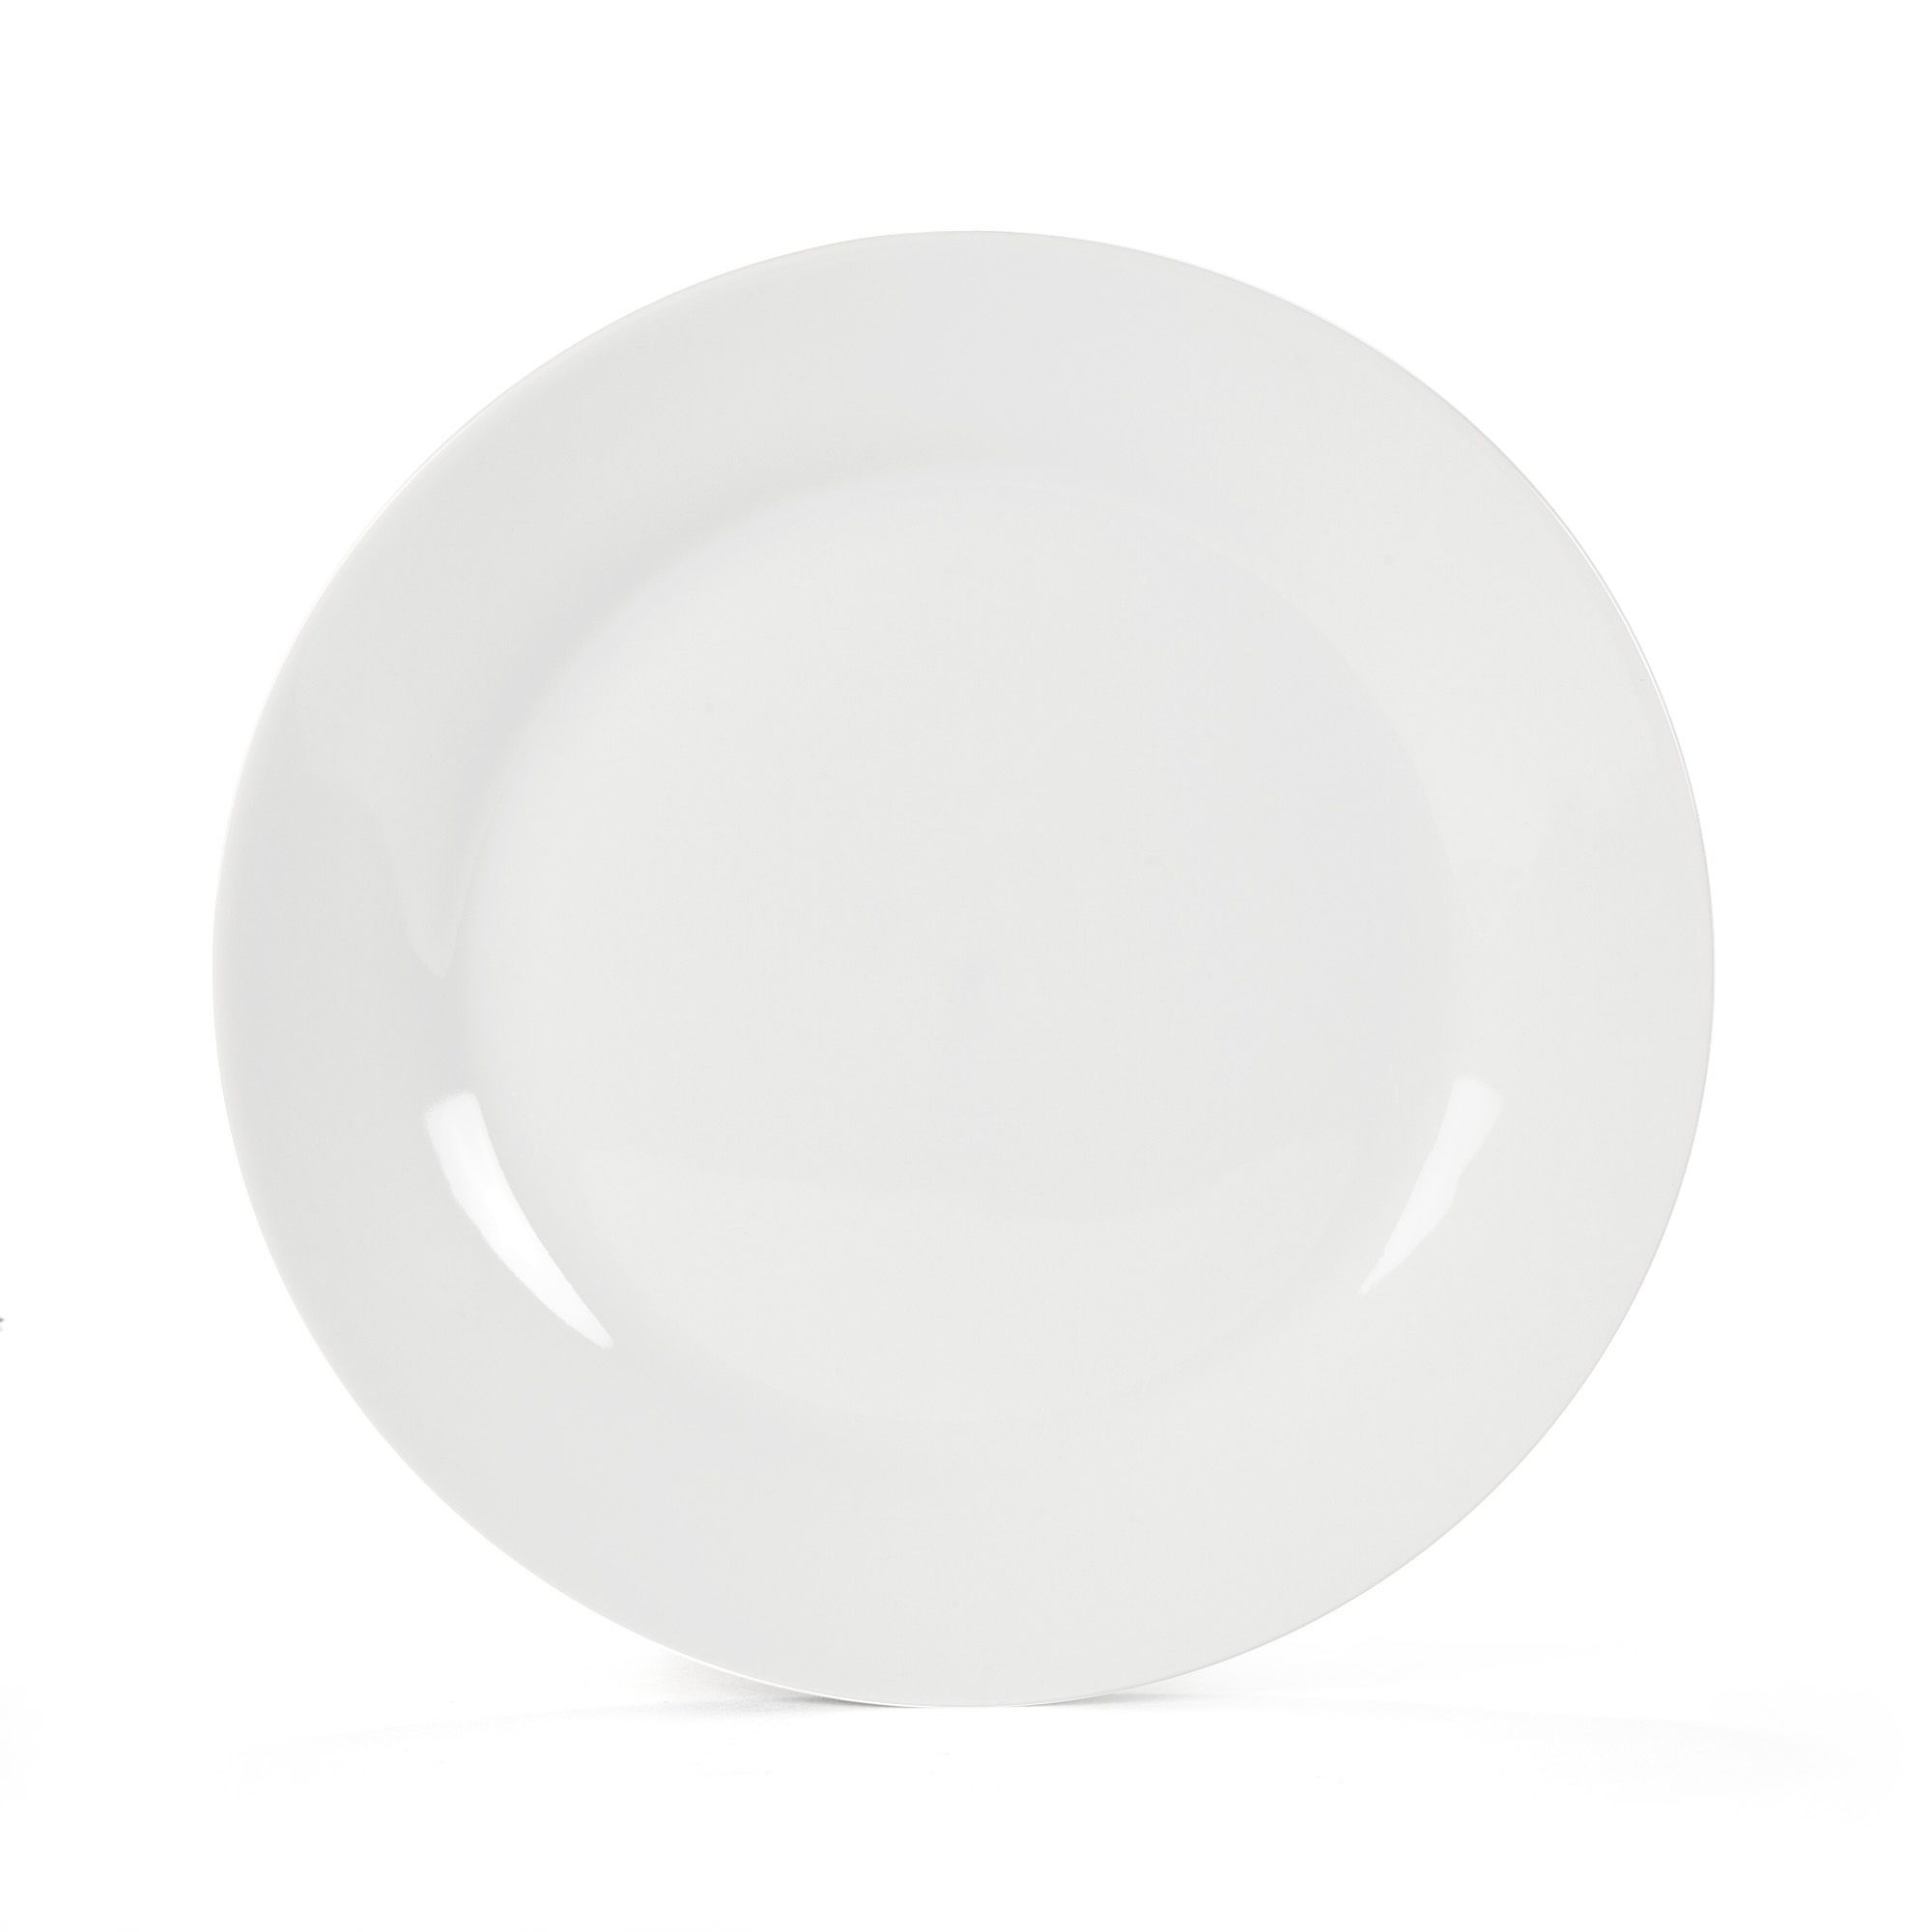 19b3b8dec2e91903320a2e55e08cf333 Meilleur De De Set De Table Alinea